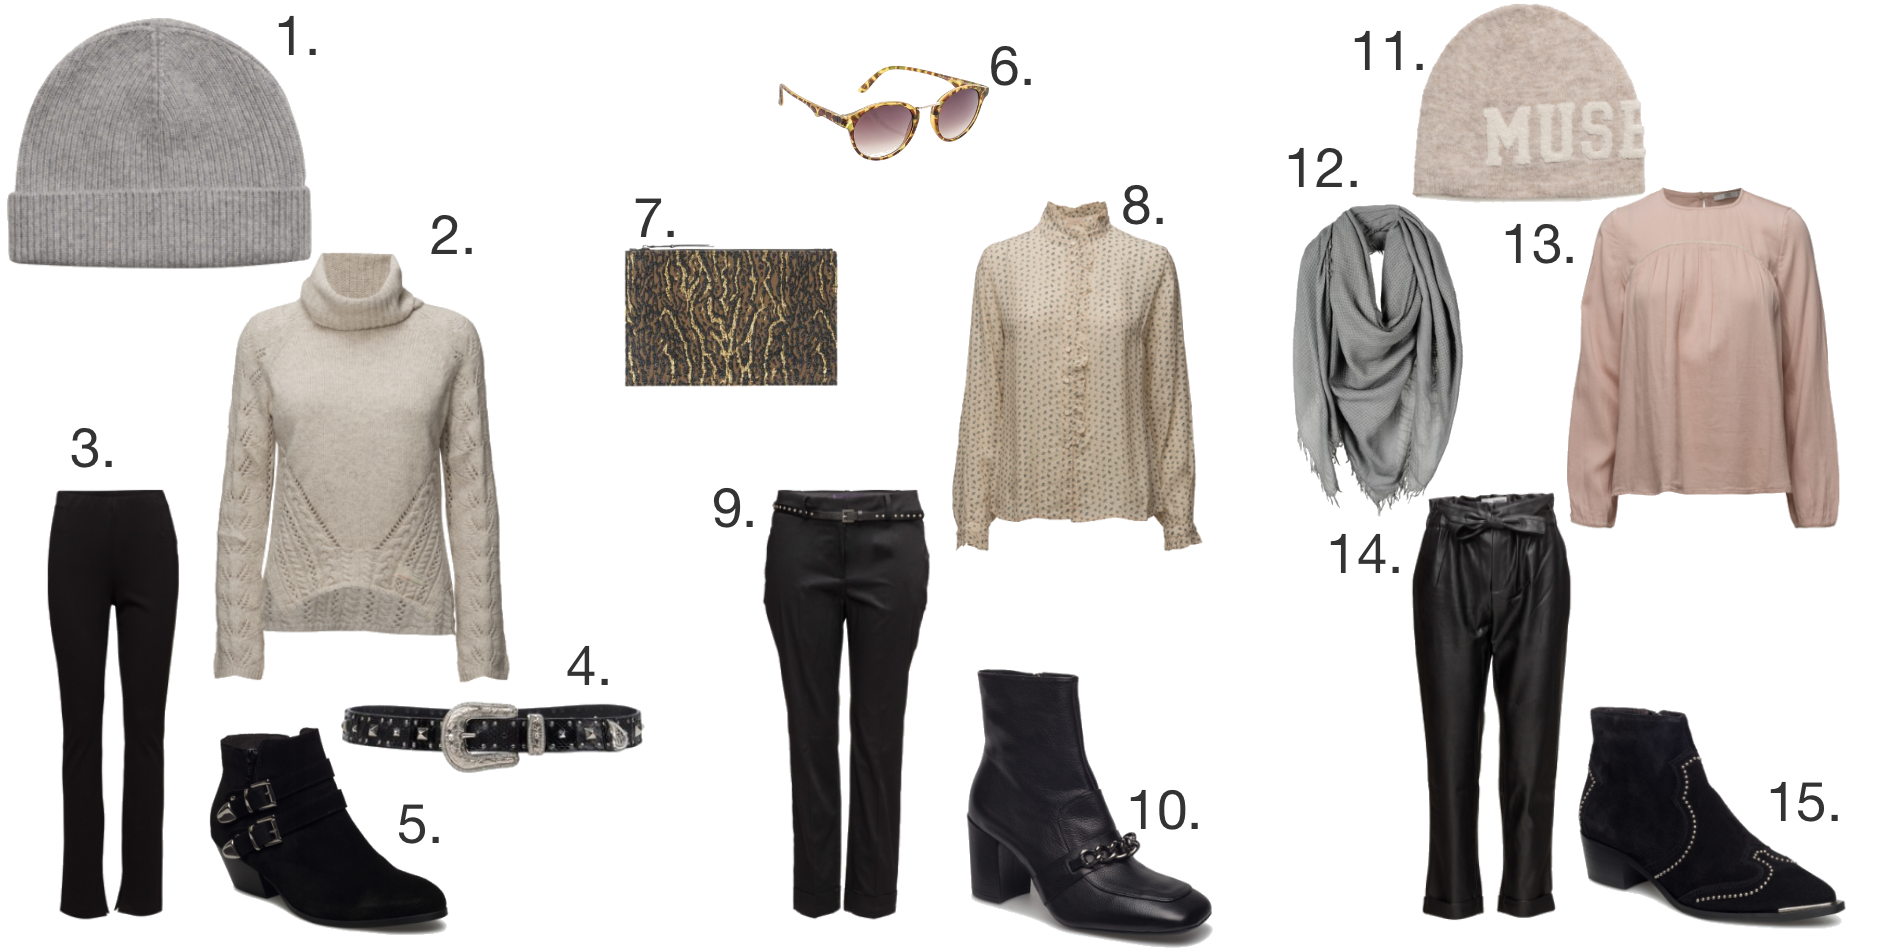 Winther outfit ideas